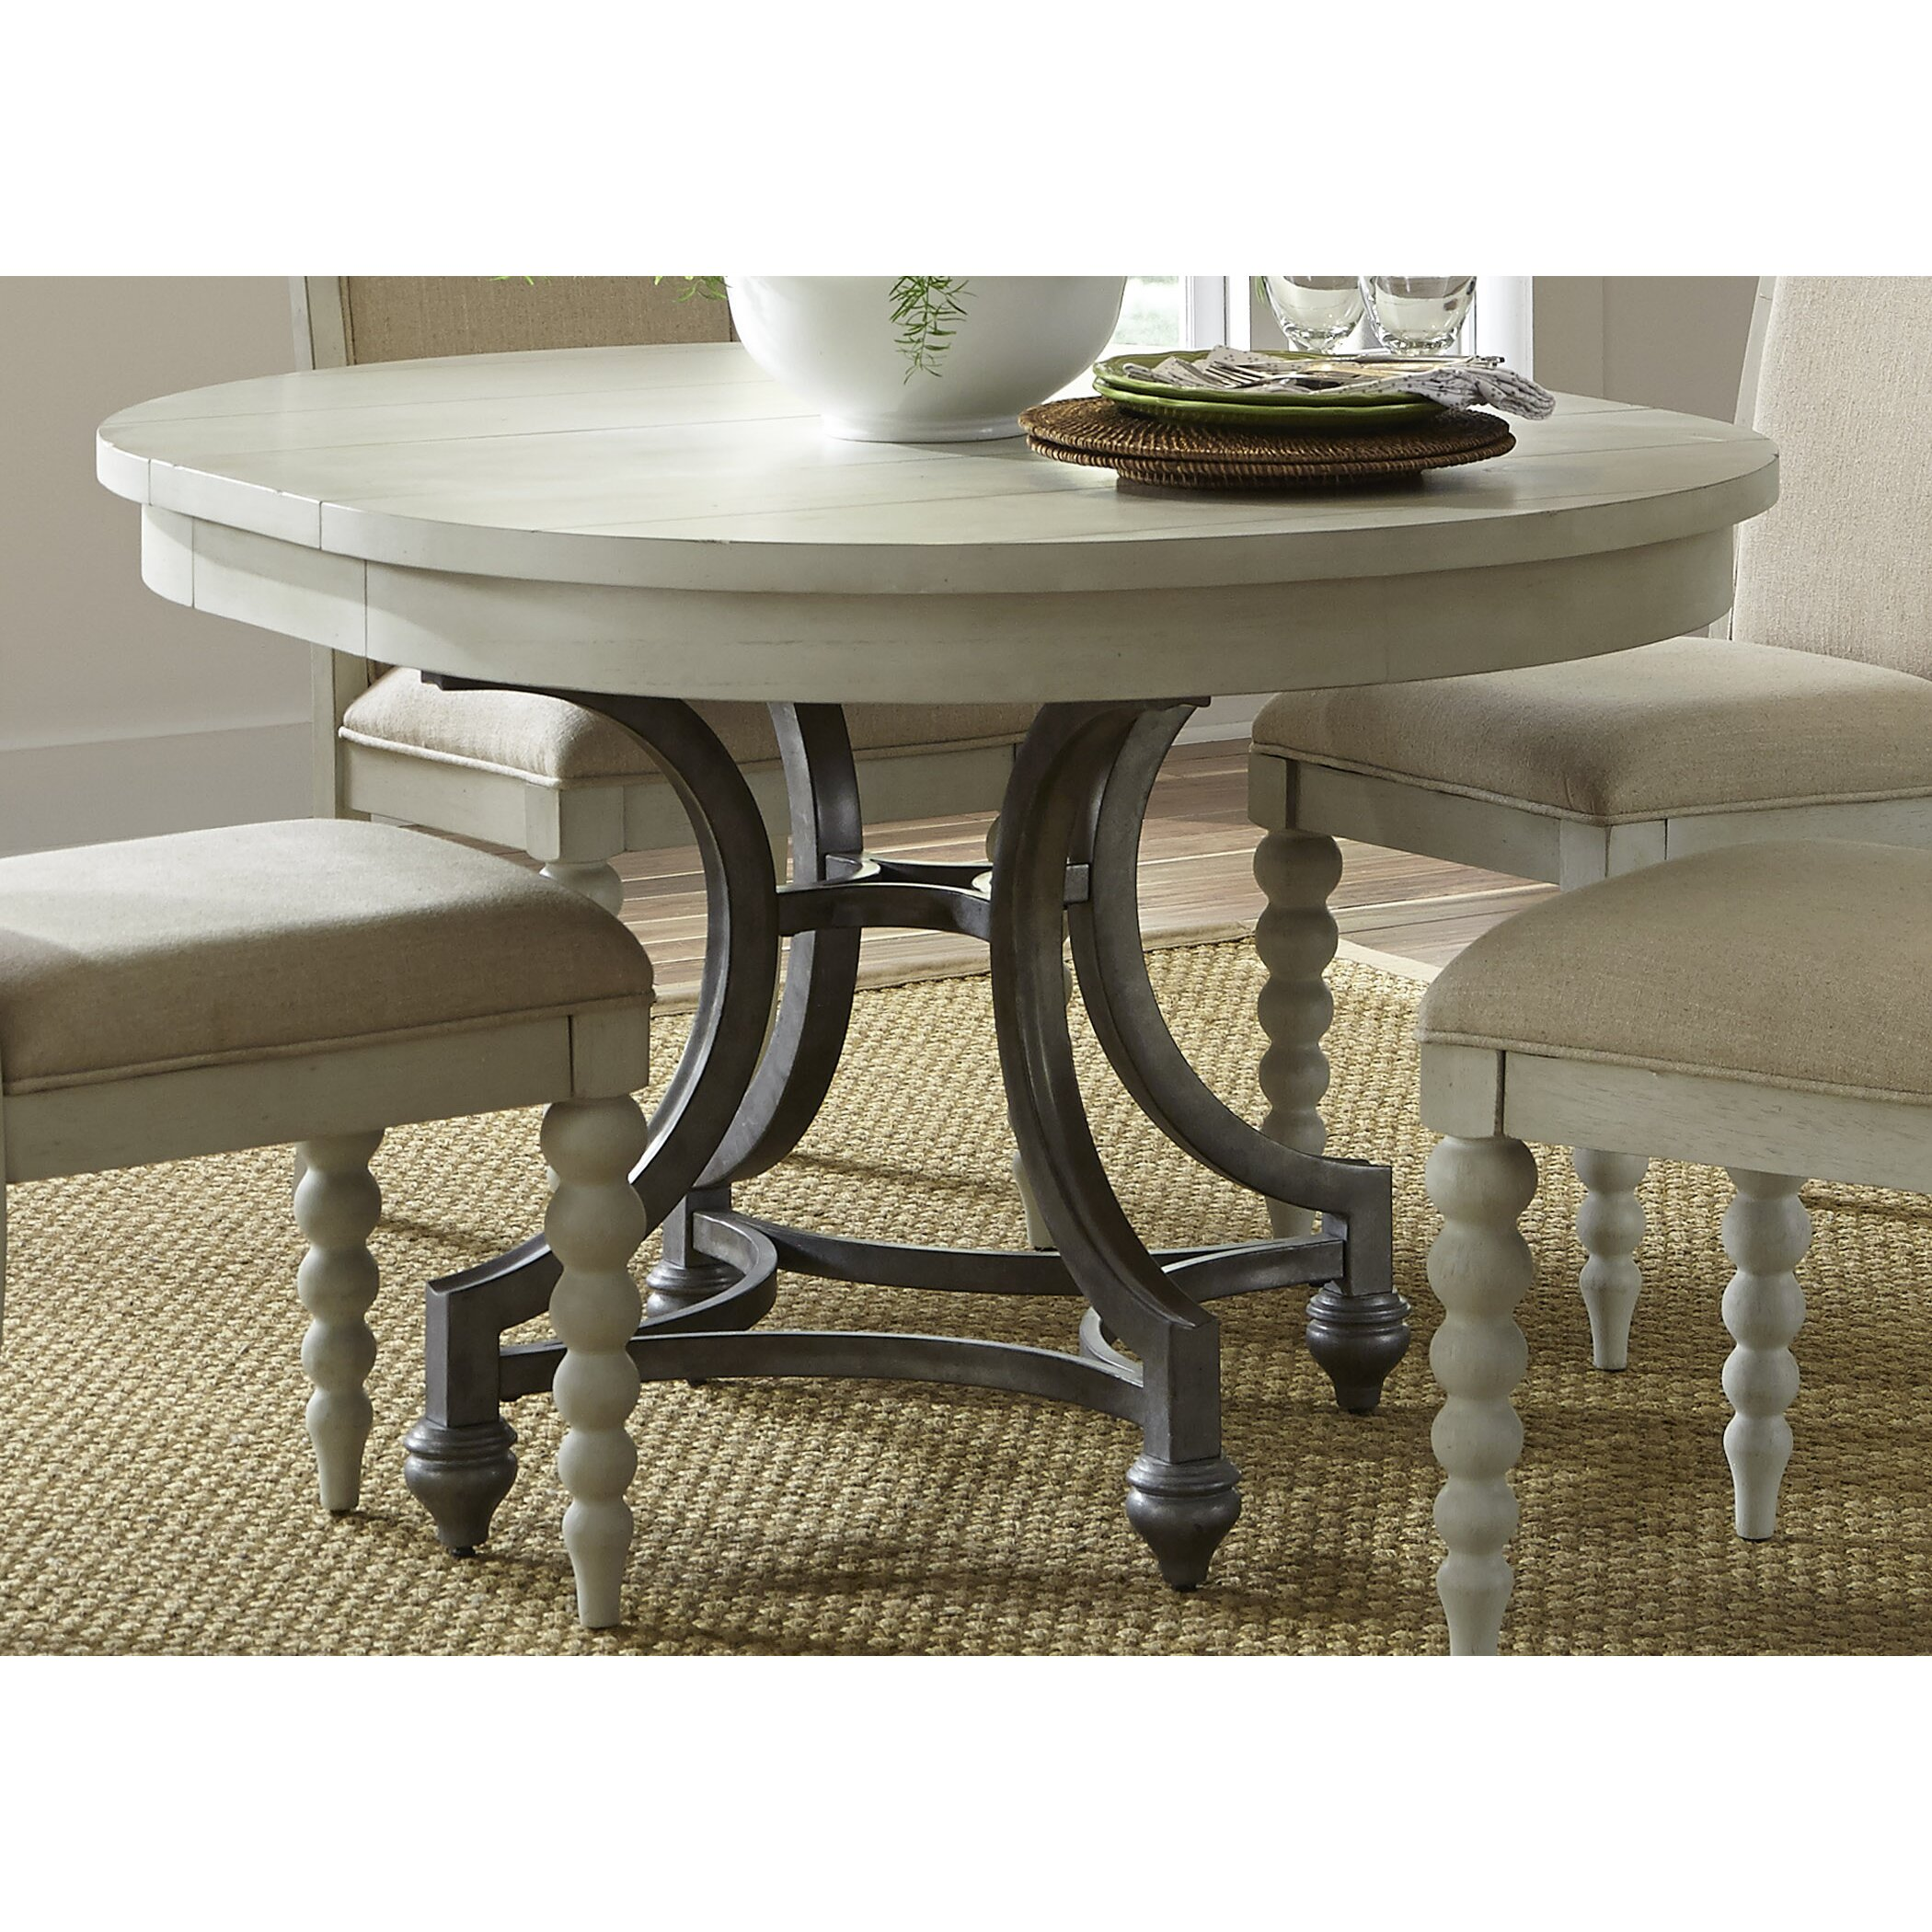 Wayfair Table: Beachcrest Home Stamford Round Dining Table & Reviews